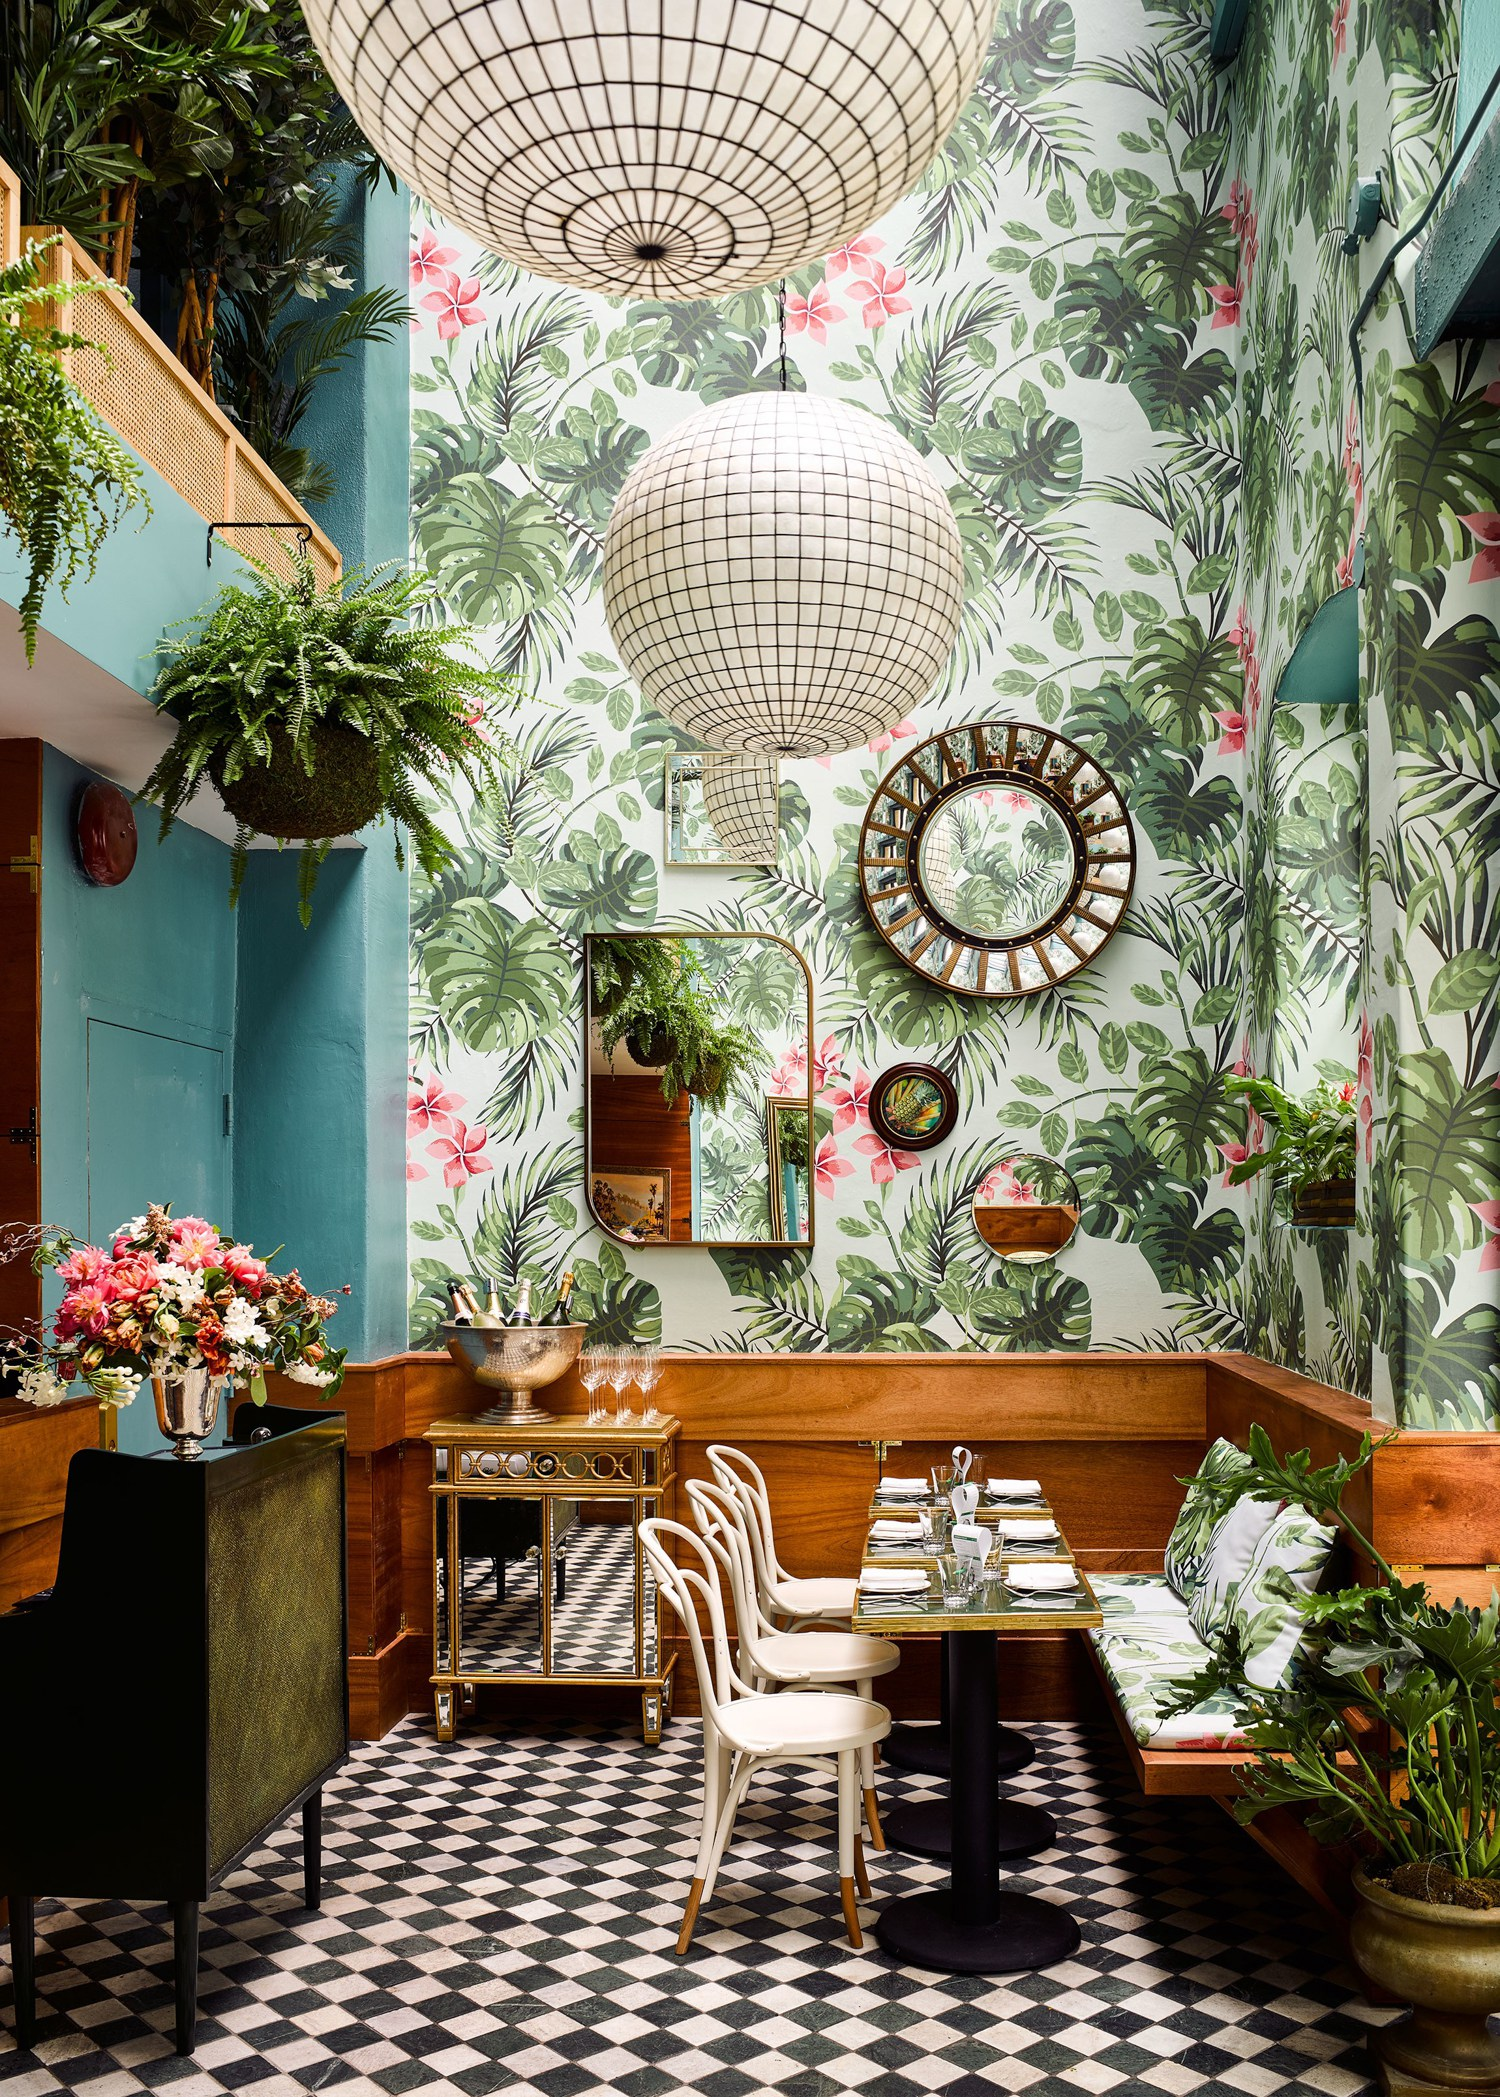 Leo's Oyster Bar San Francisco - Botanical wallpaper - Ken Fulk Interior Design - tropical trend 2018 - interior design trends 2018 - tropical wallpaper - tropical motifs in home decor